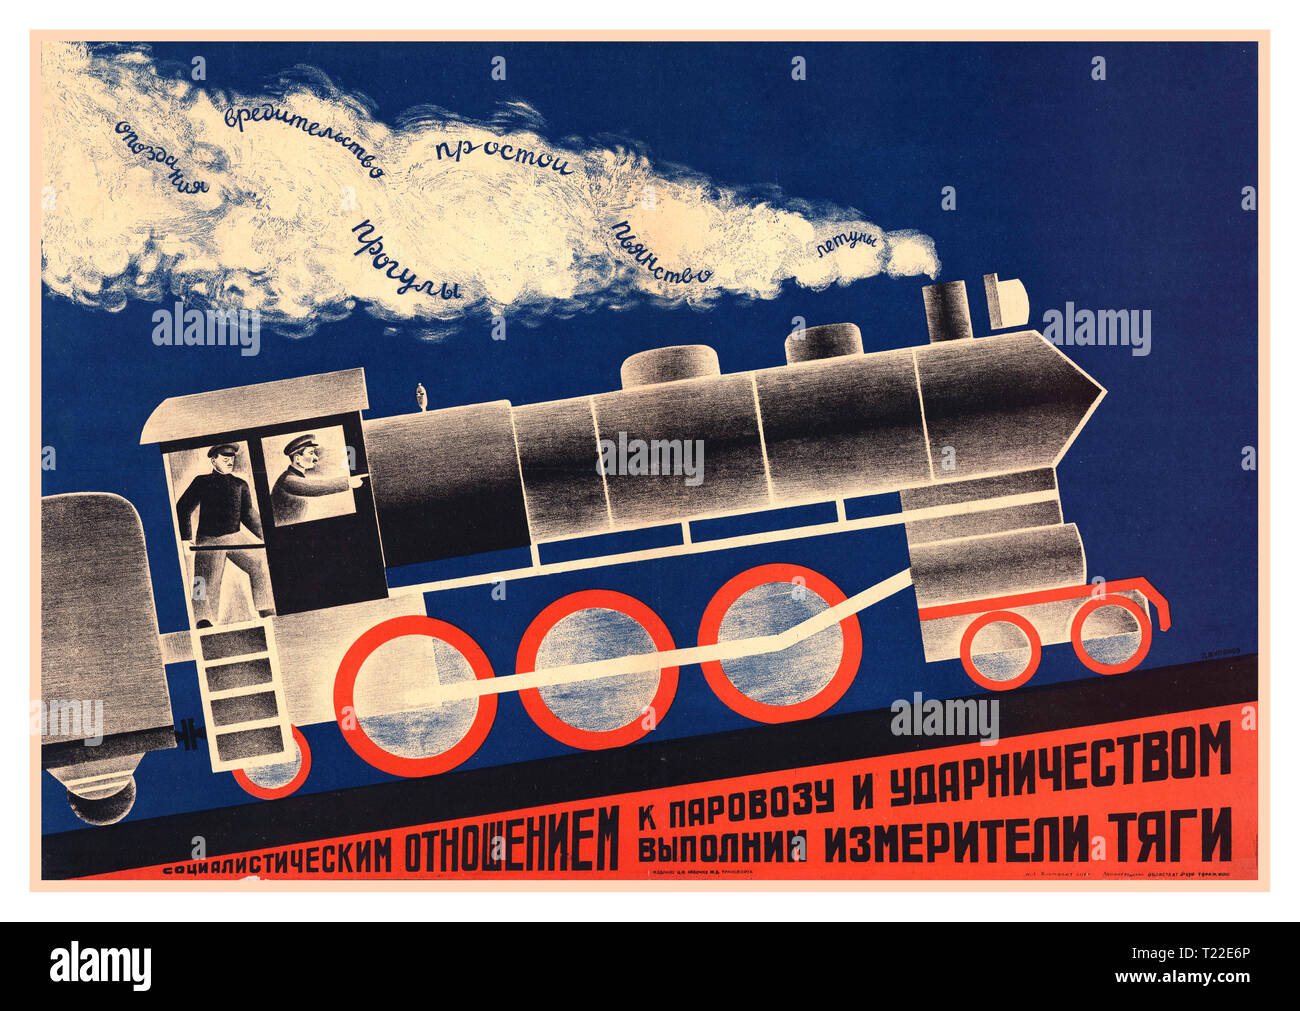 Vintage Russian Soviet USSR Propaganda Poster 'With a socialist attitude to the locomotive and percussion, we will perform measured traction' Illustration of Steam Locomotive under full steam heading up incline  Leningrad Central Committee of workers transport 1931 Leningrad: Lithograph 'Chromolite' - Color lithograph - Stock Image